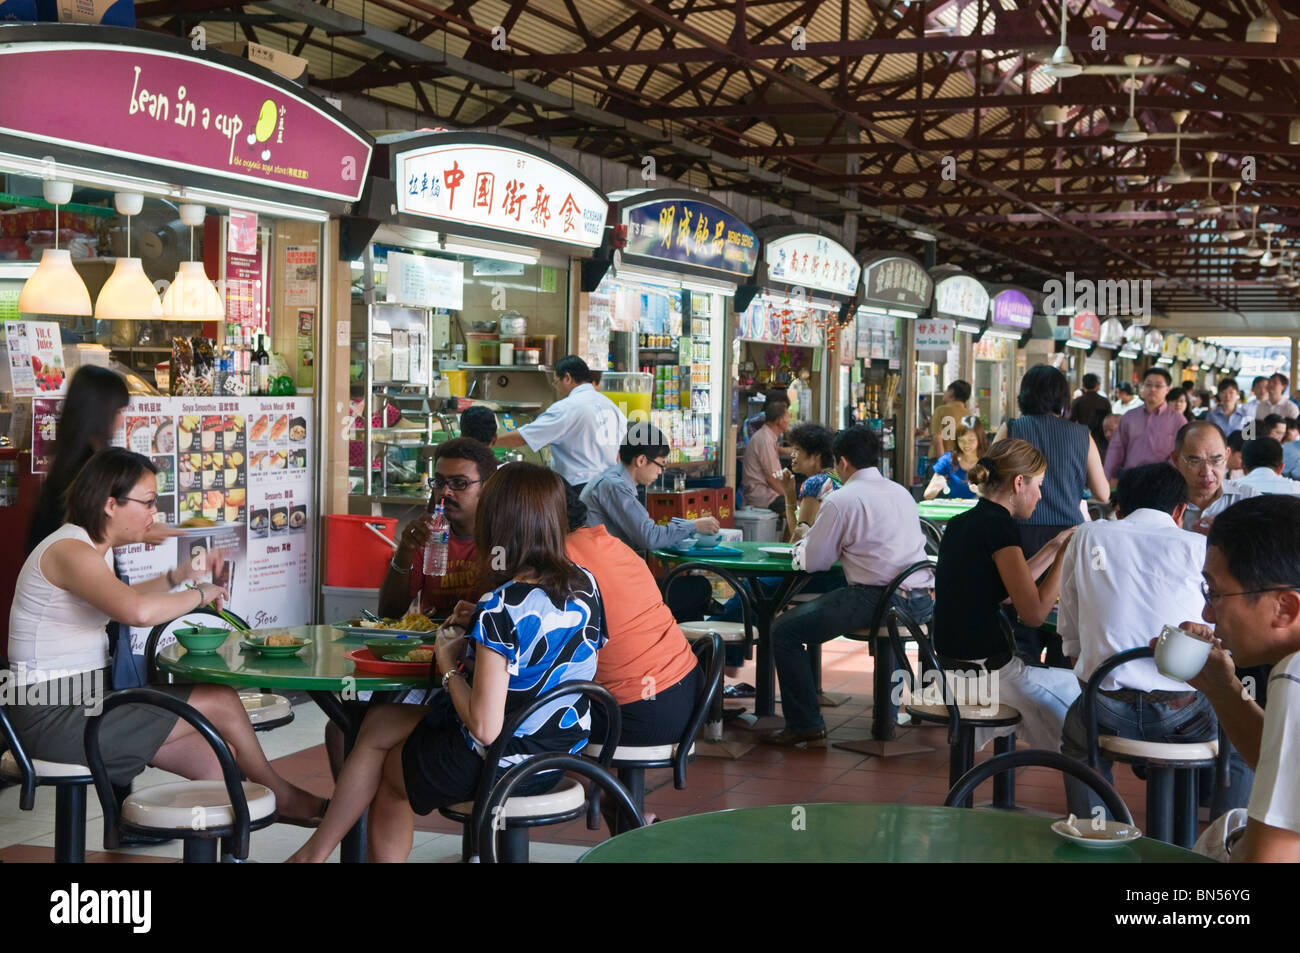 Maxwell Food Centre Chinatown Singapore Stock Photo 30233380 Alamy